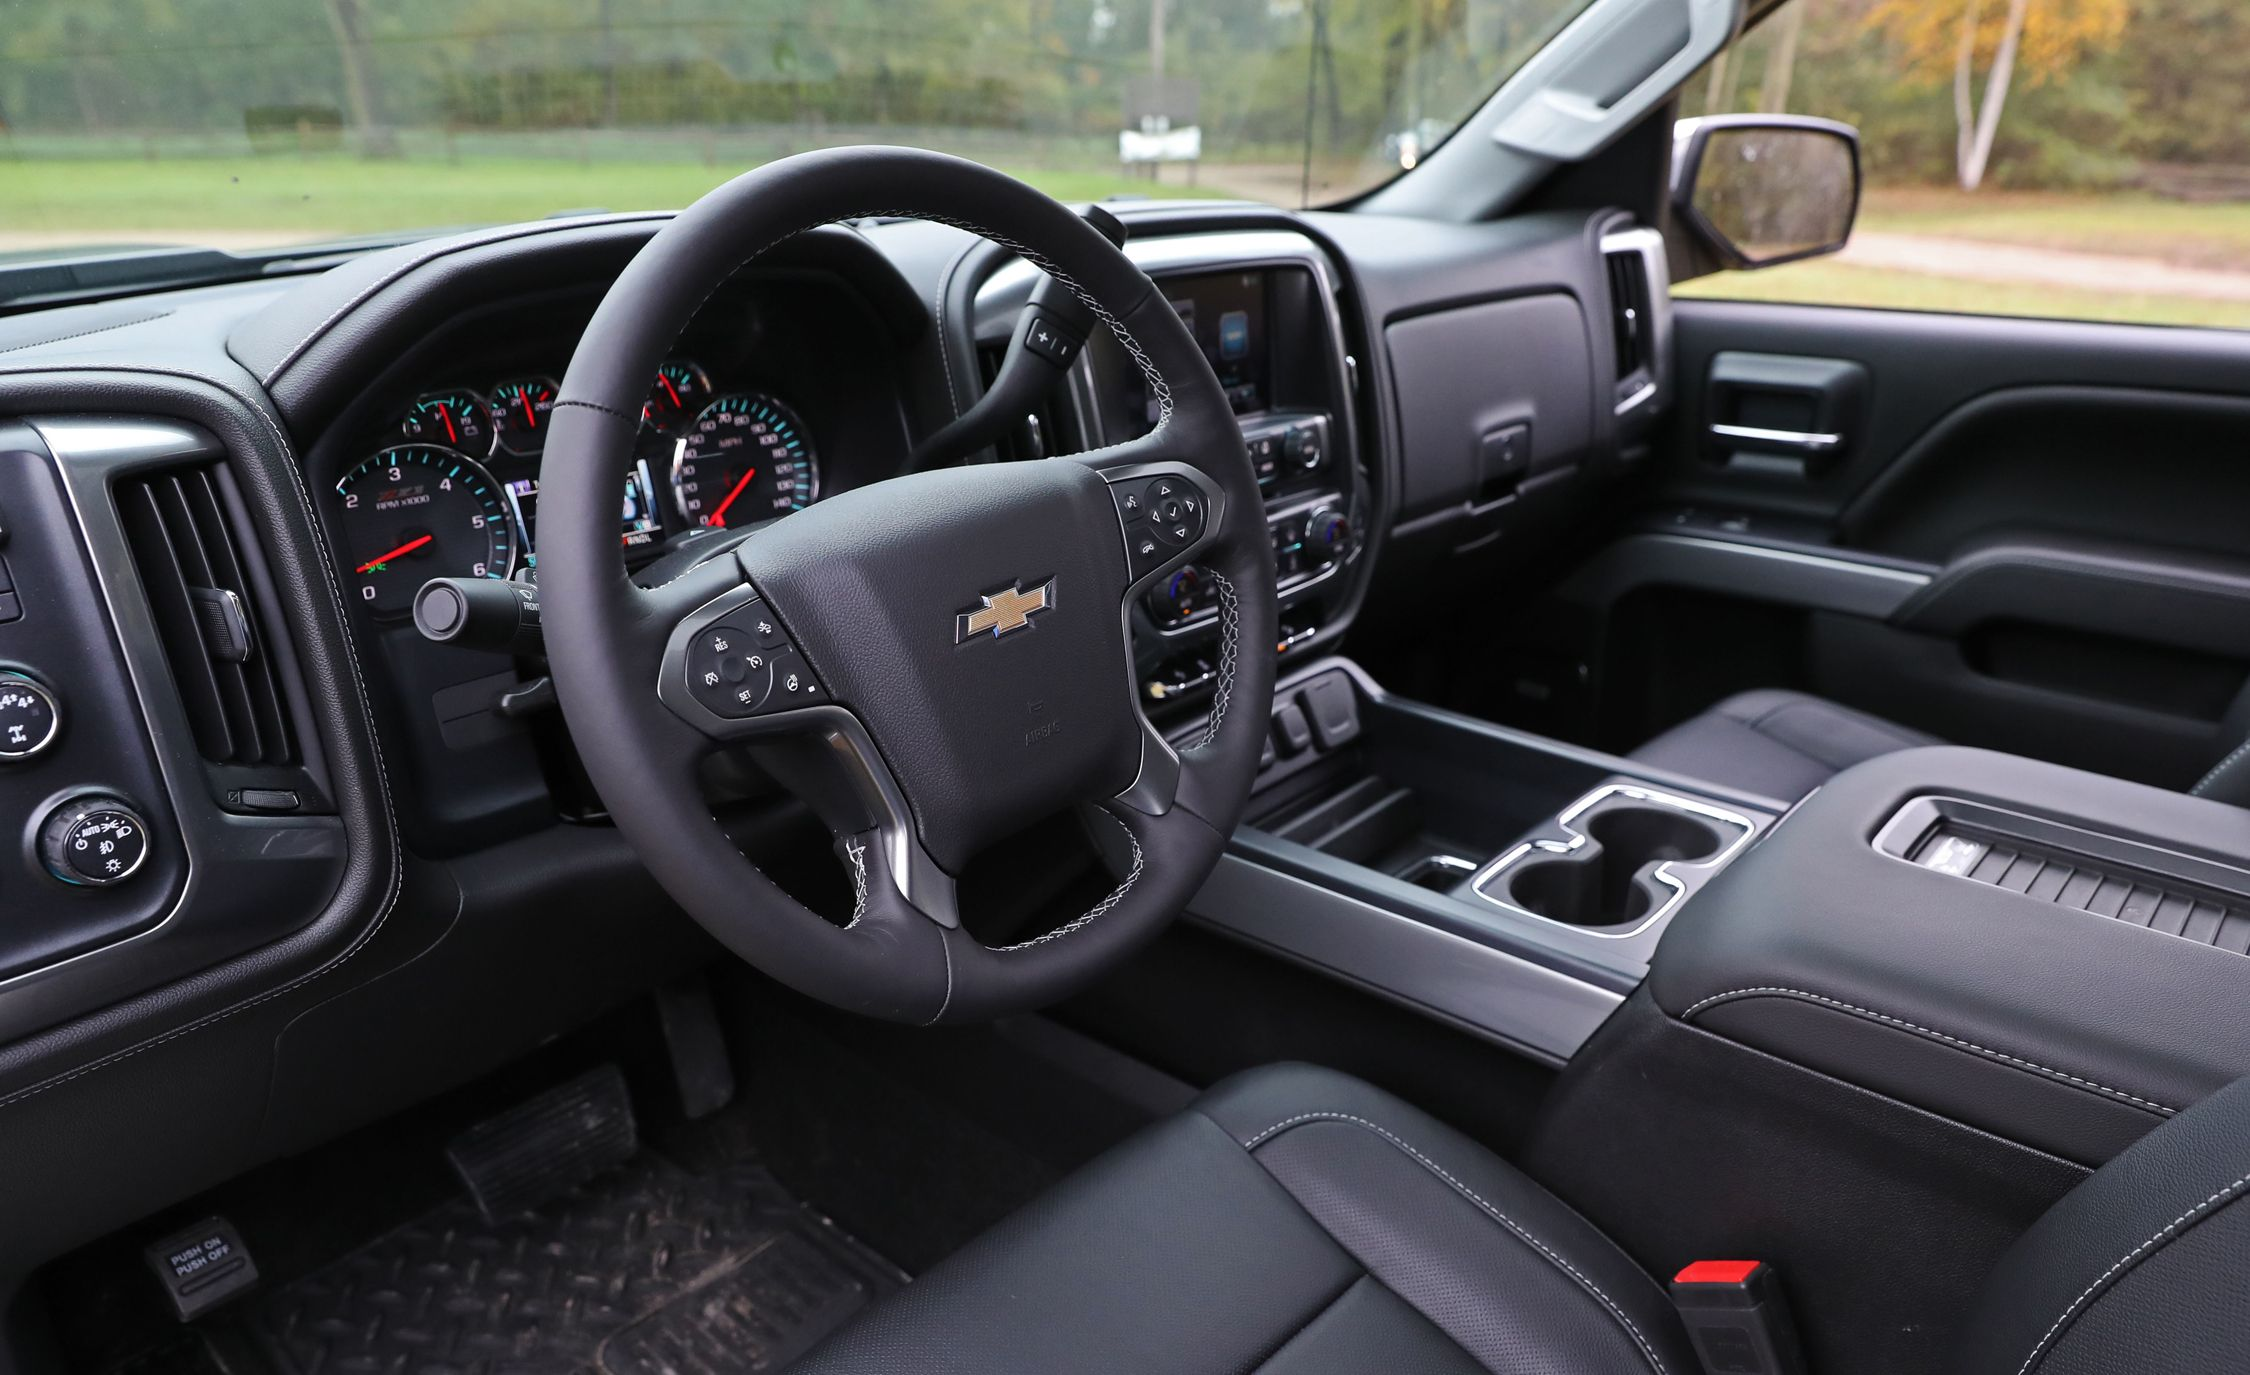 2017 Chevrolet Silverado Interior Review Car And Driver